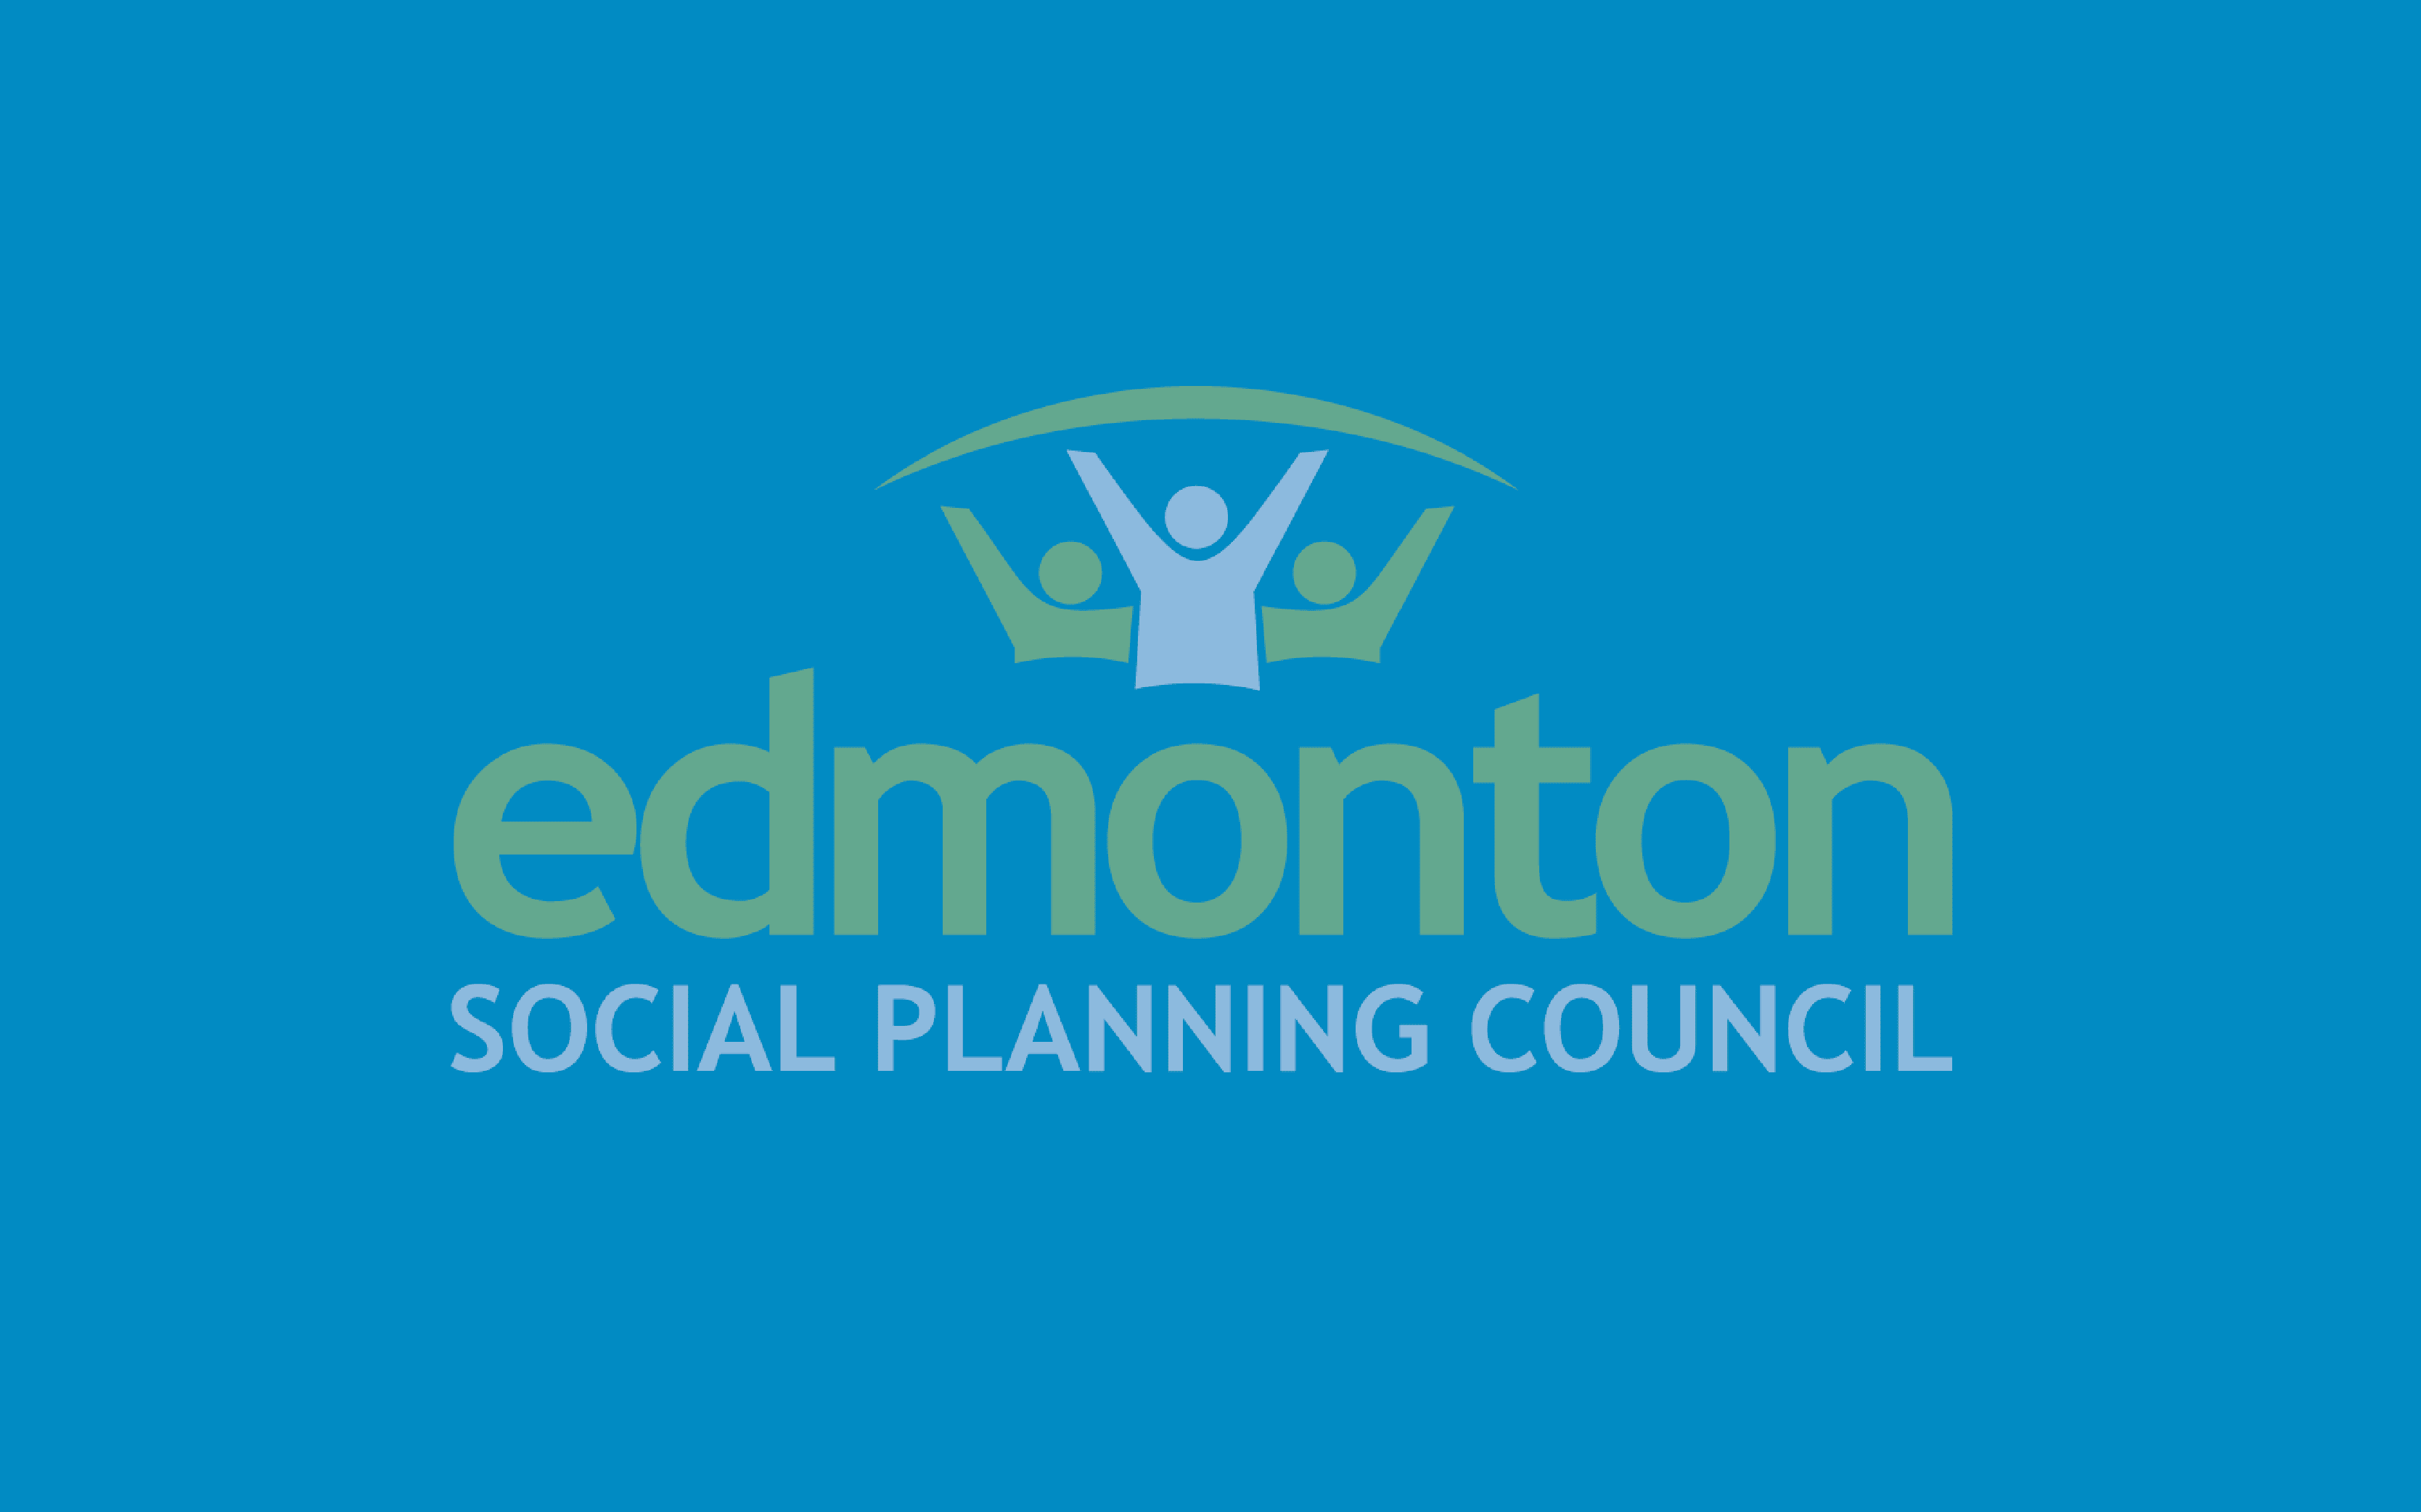 Media Release: Edmonton Living Wage 2018 Update